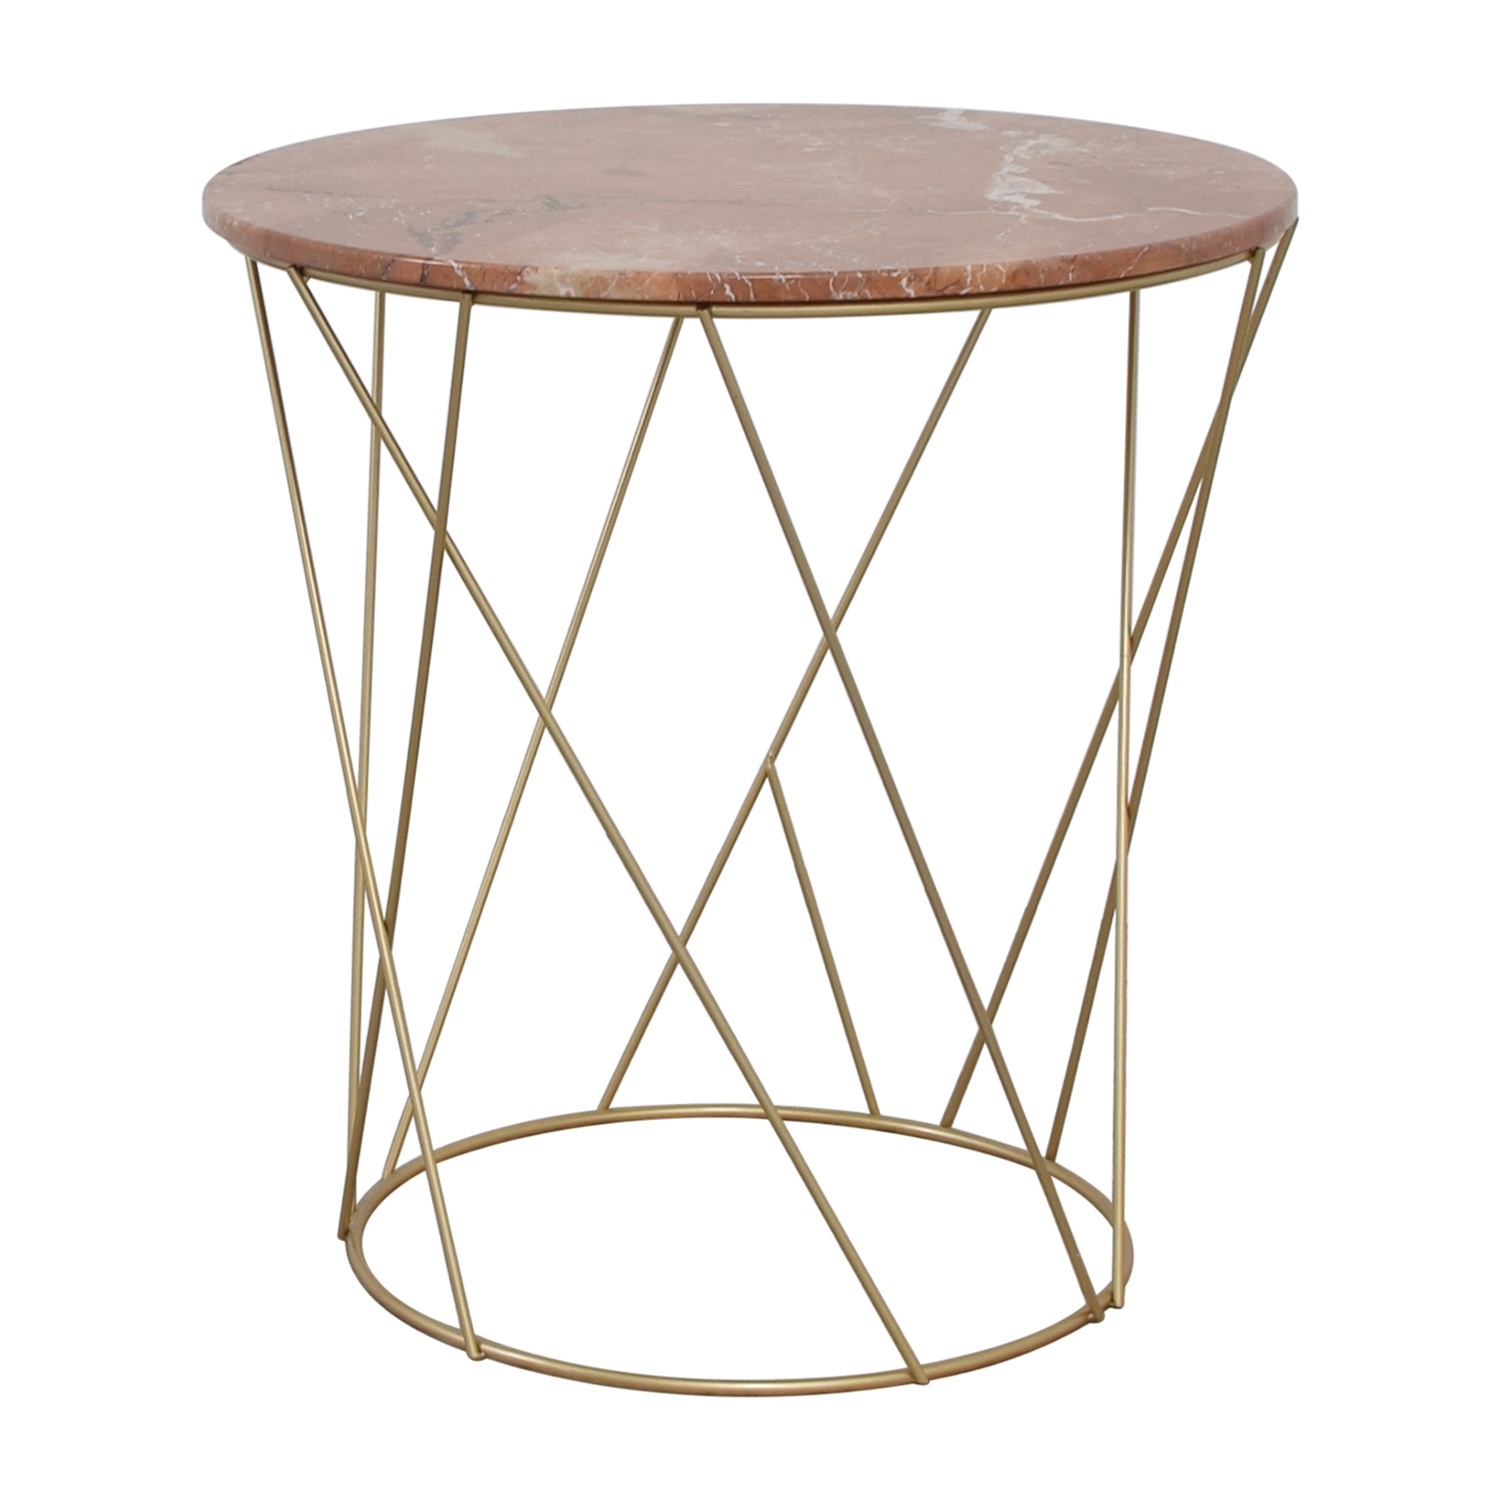 off lotus pink gold round marble table tables used accent drum chair sofa with storage west elm pendant lamp long narrow very small occasional solid cherry wood coffee light bulb